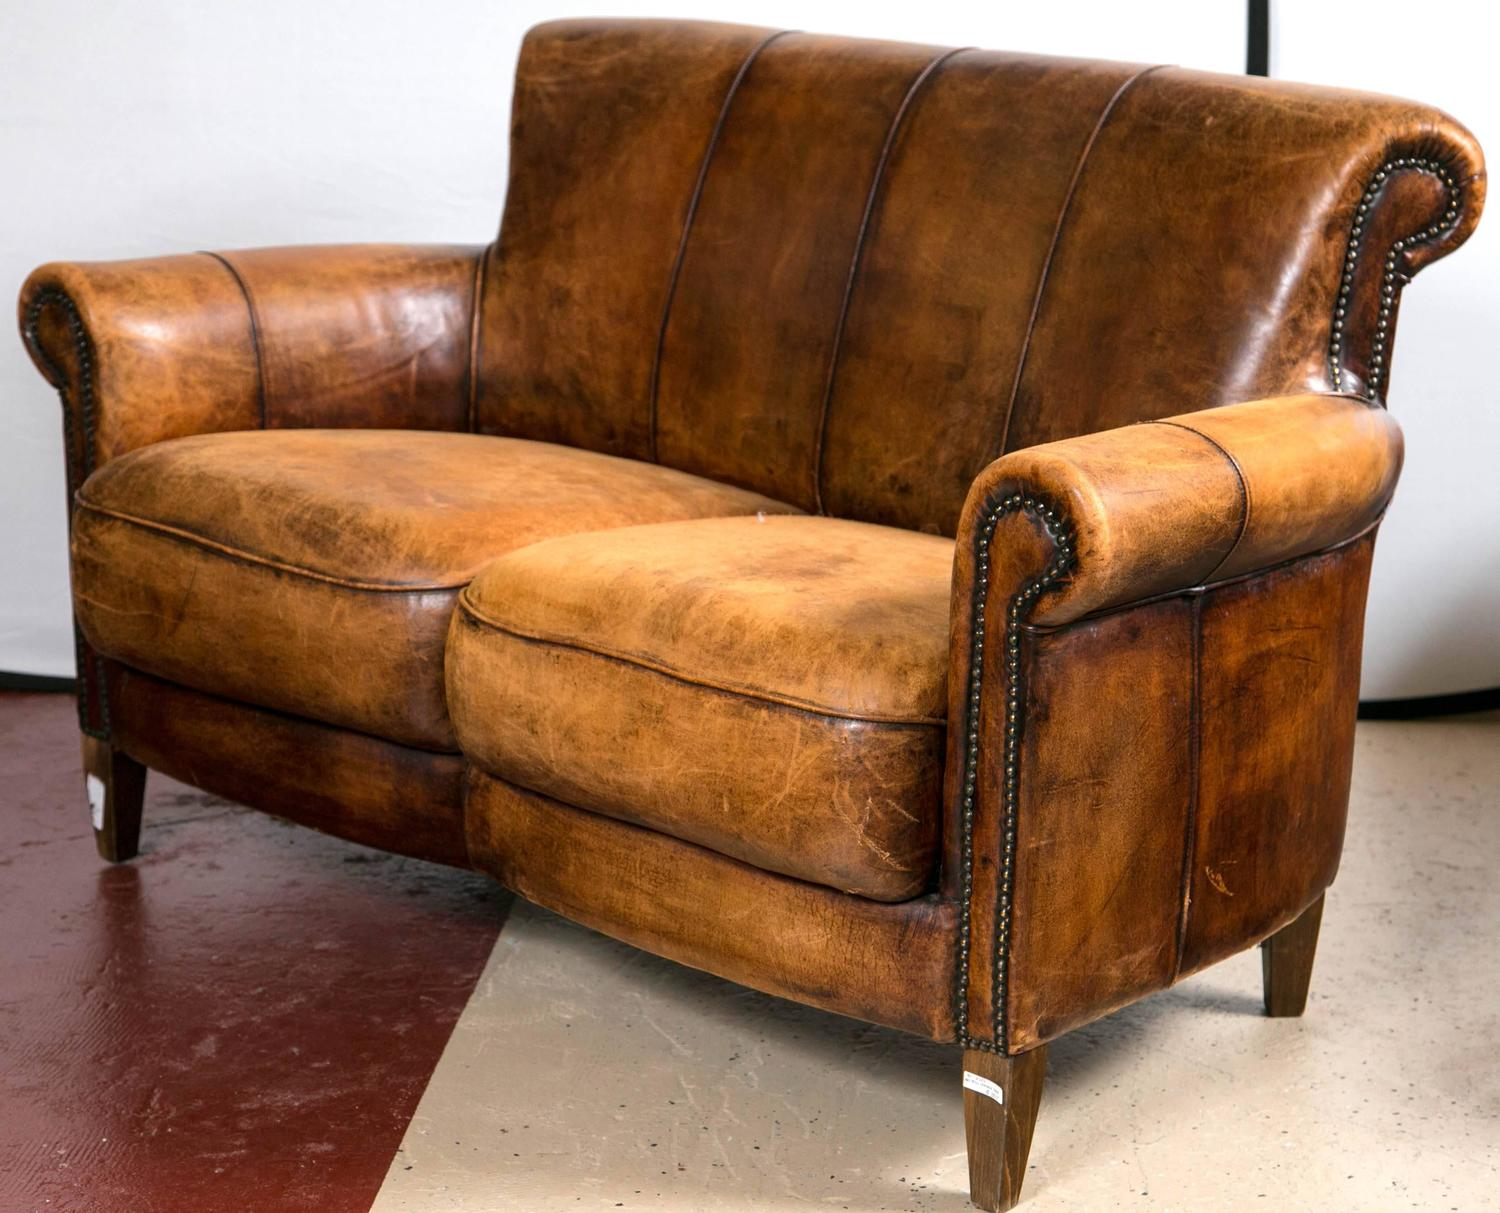 vintage french distressed art deco leather sofa at 1stdibs. Black Bedroom Furniture Sets. Home Design Ideas